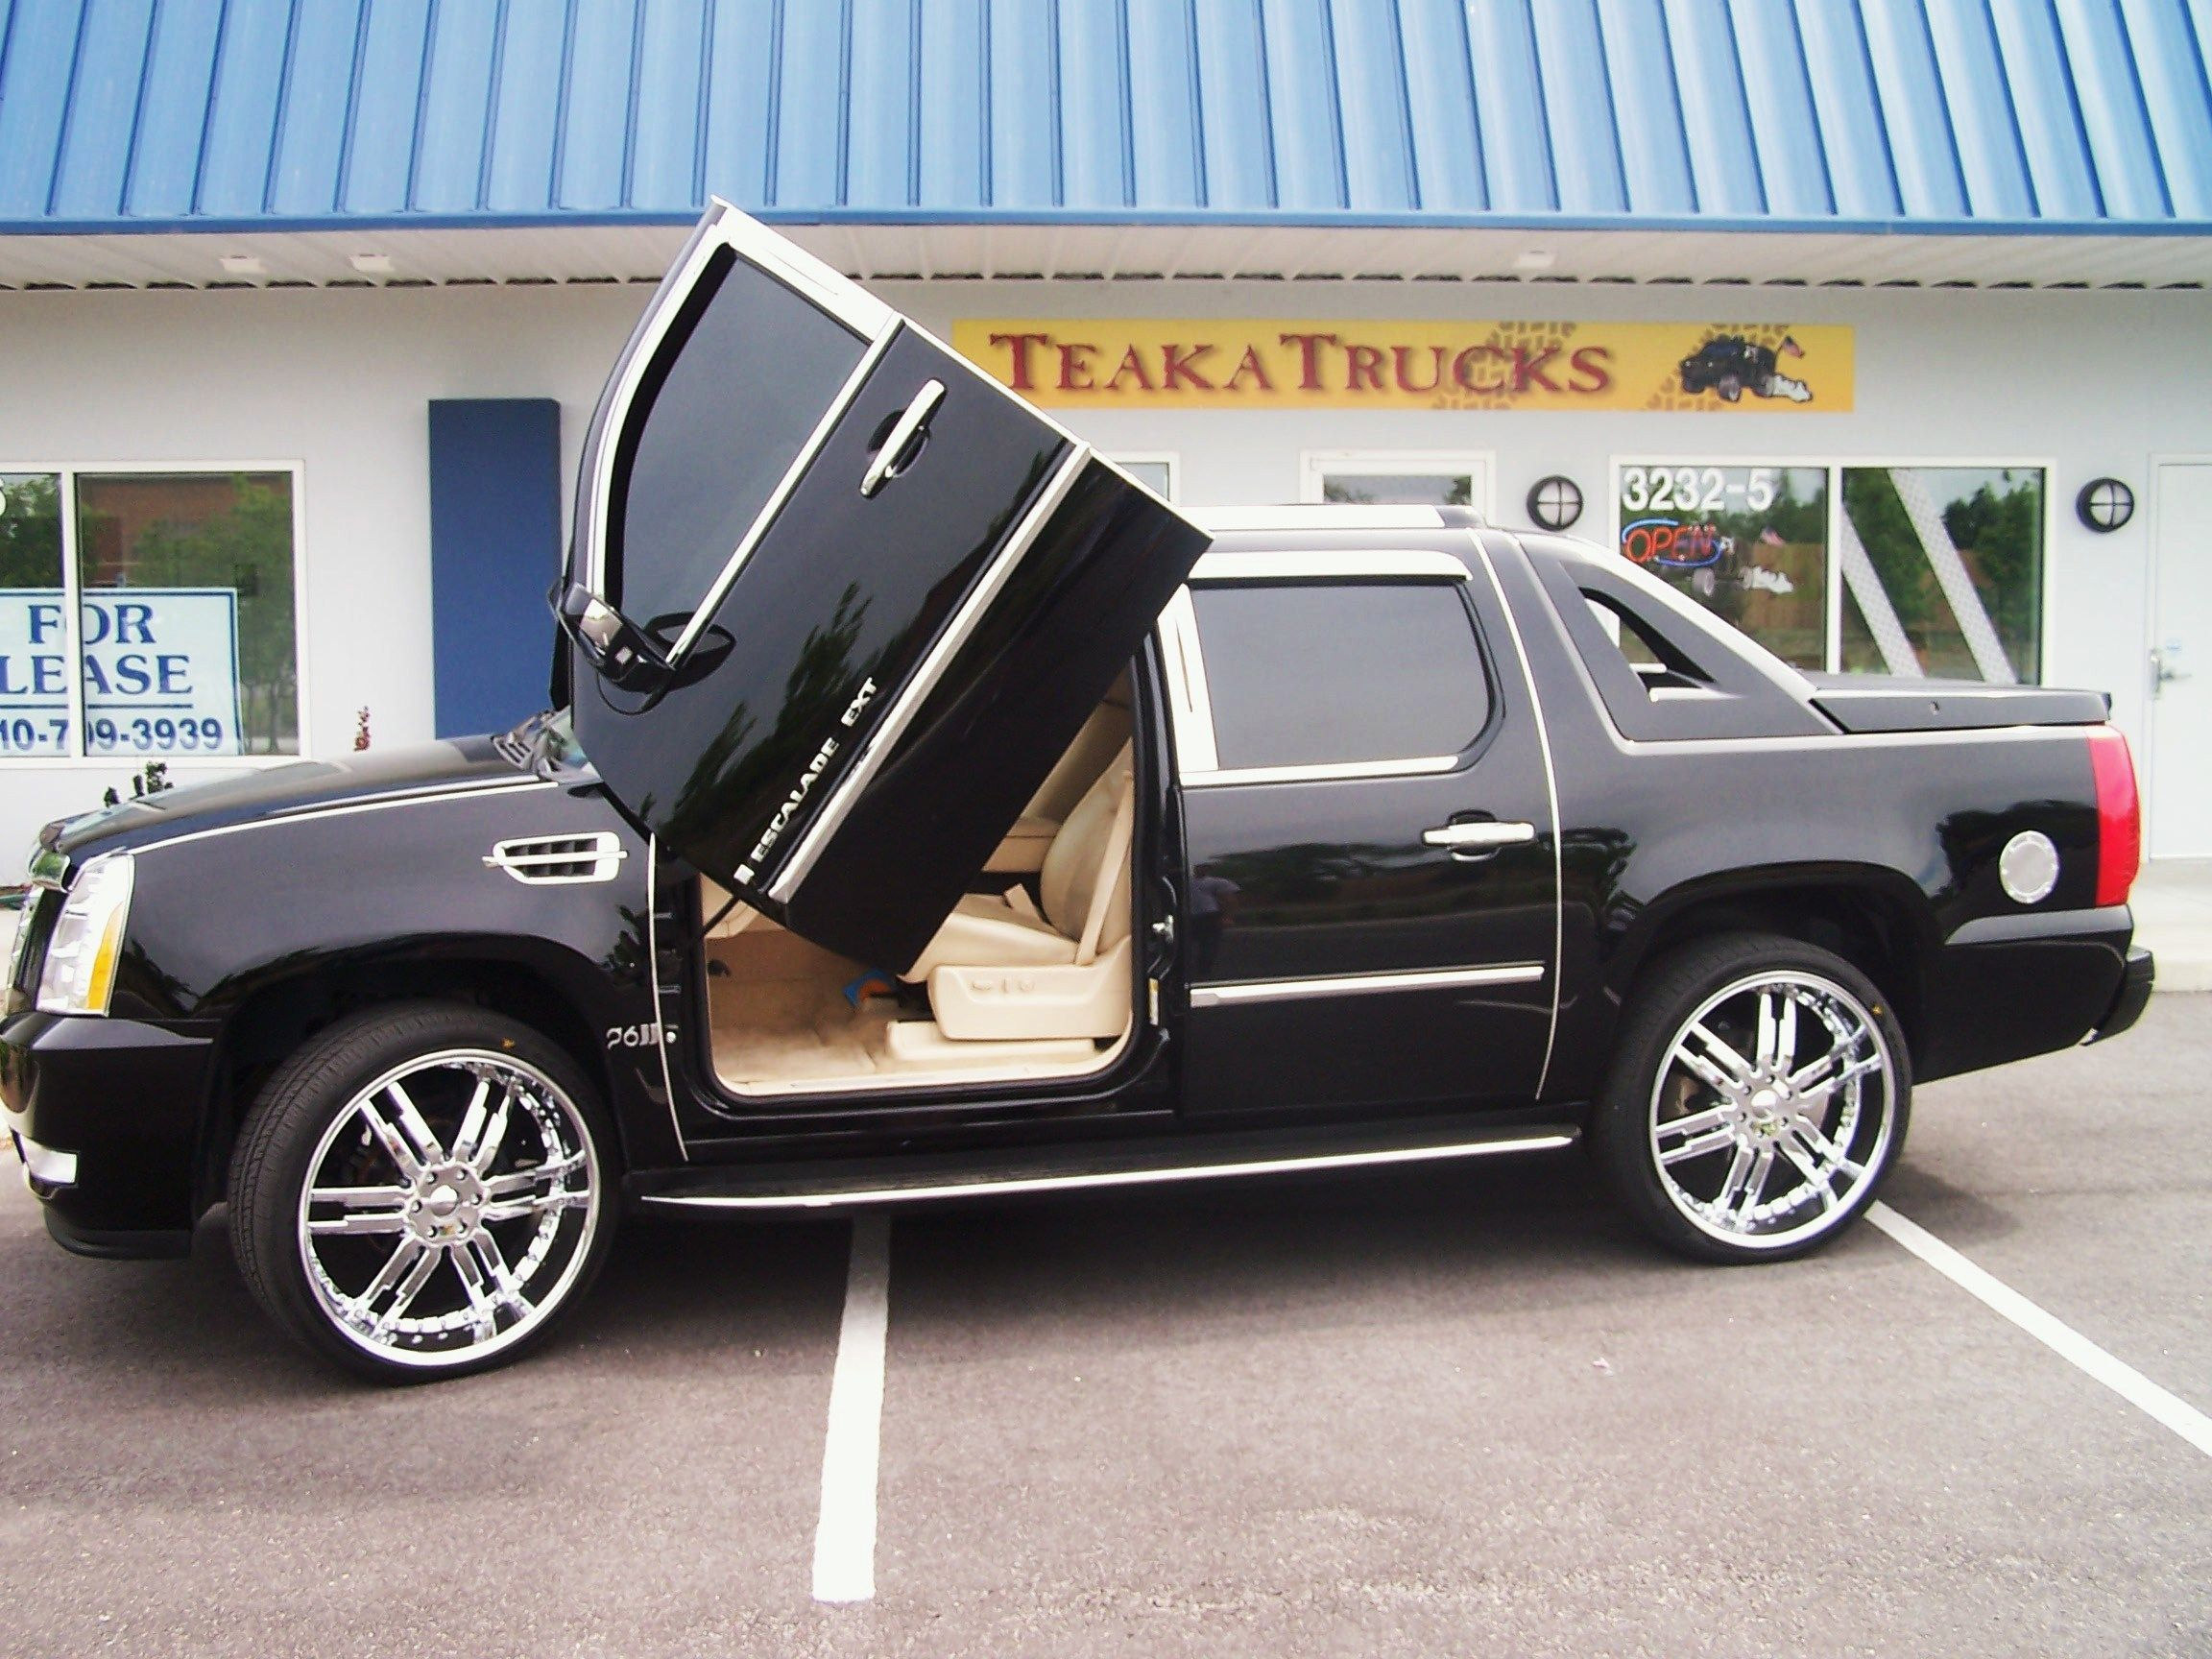 Cadillac Escalade Ext Another Dream Car Not This Tricked Out Tho That S A Bit Much For Me But Looks Good